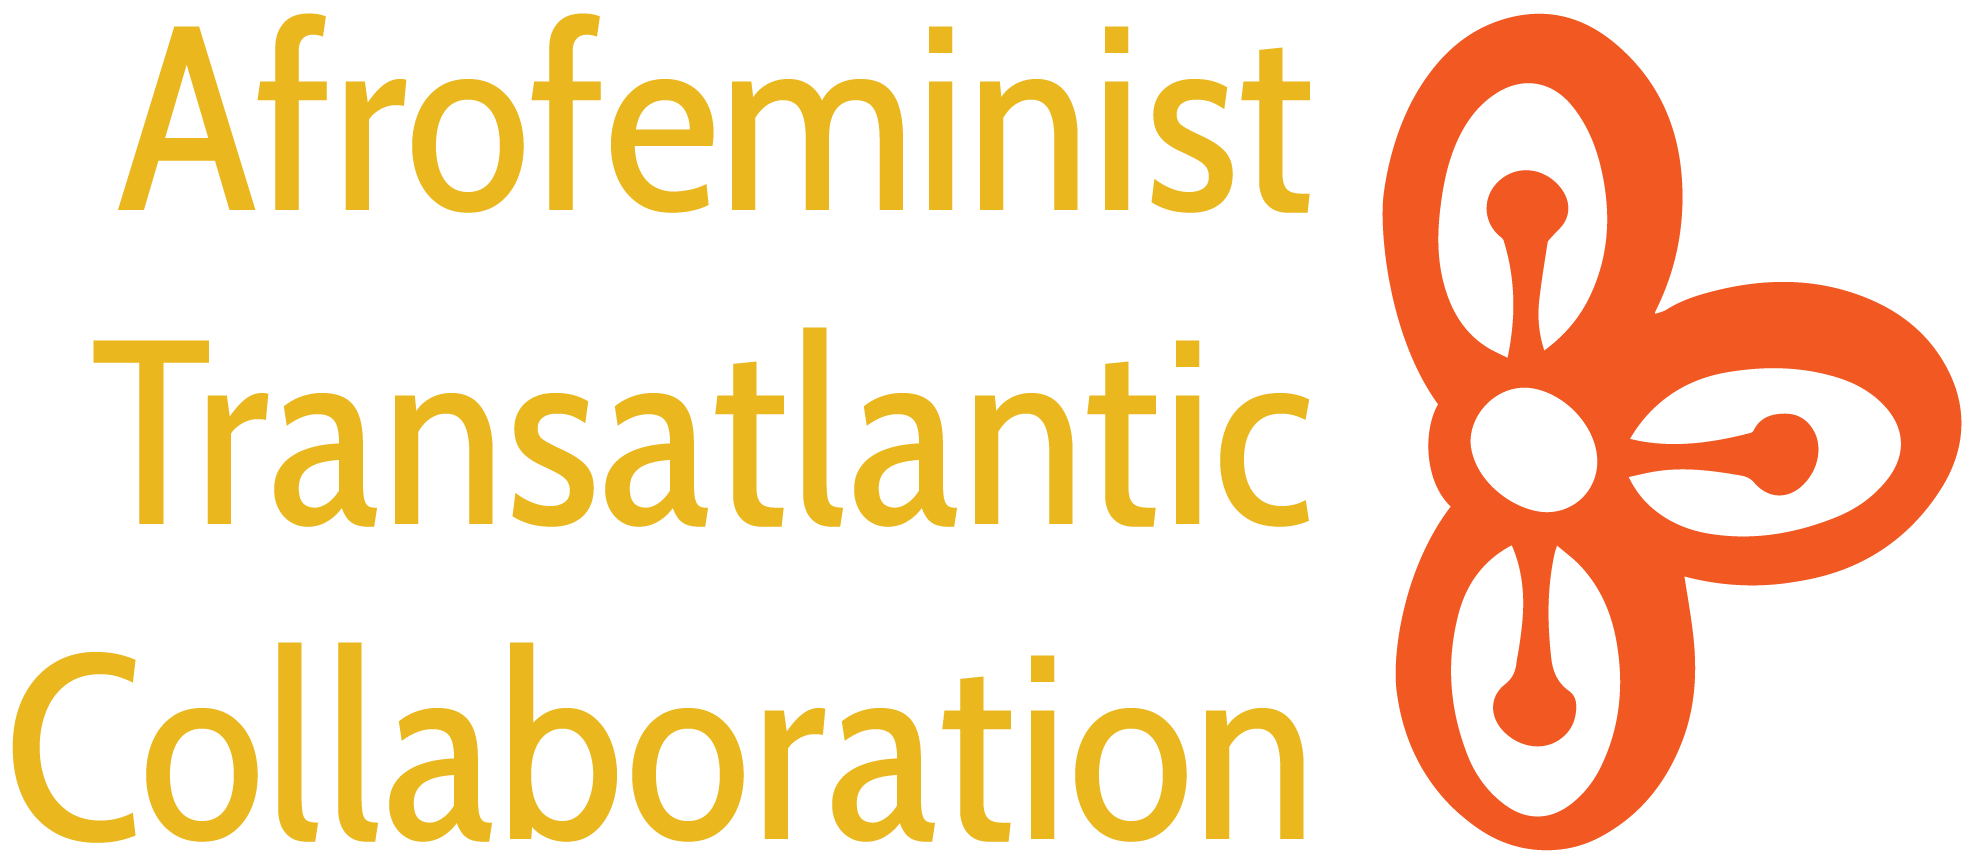 Afrofeminist Transatlantic Collaboration